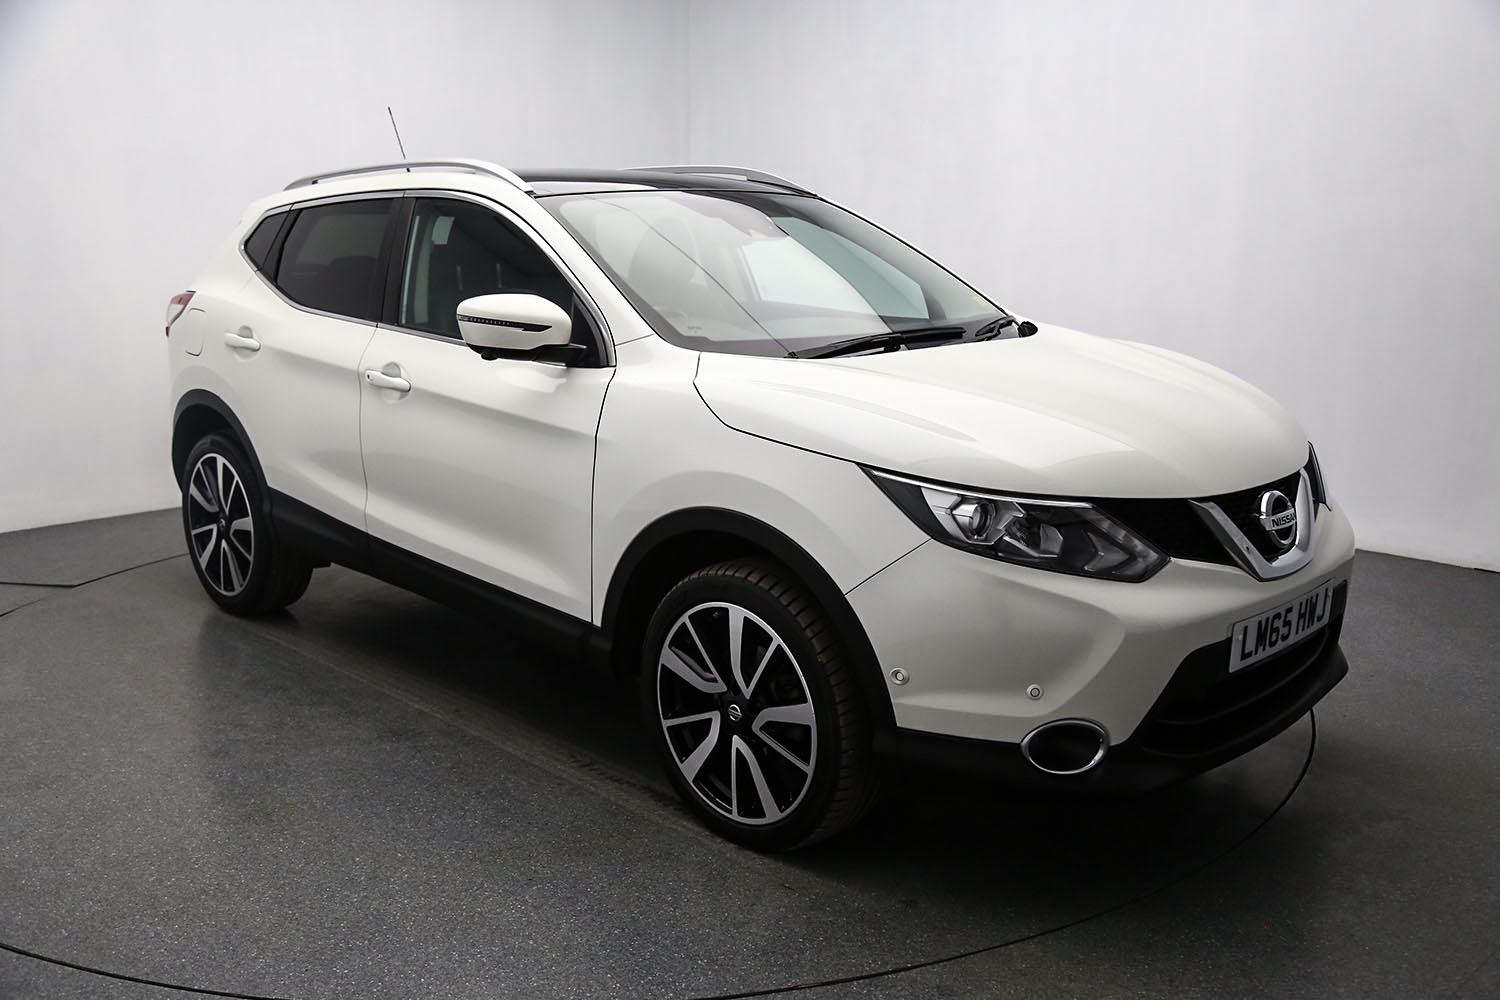 Nissan Qashqai Private Lease Buy A Used Nissan Qashqai Car Online Ecars247